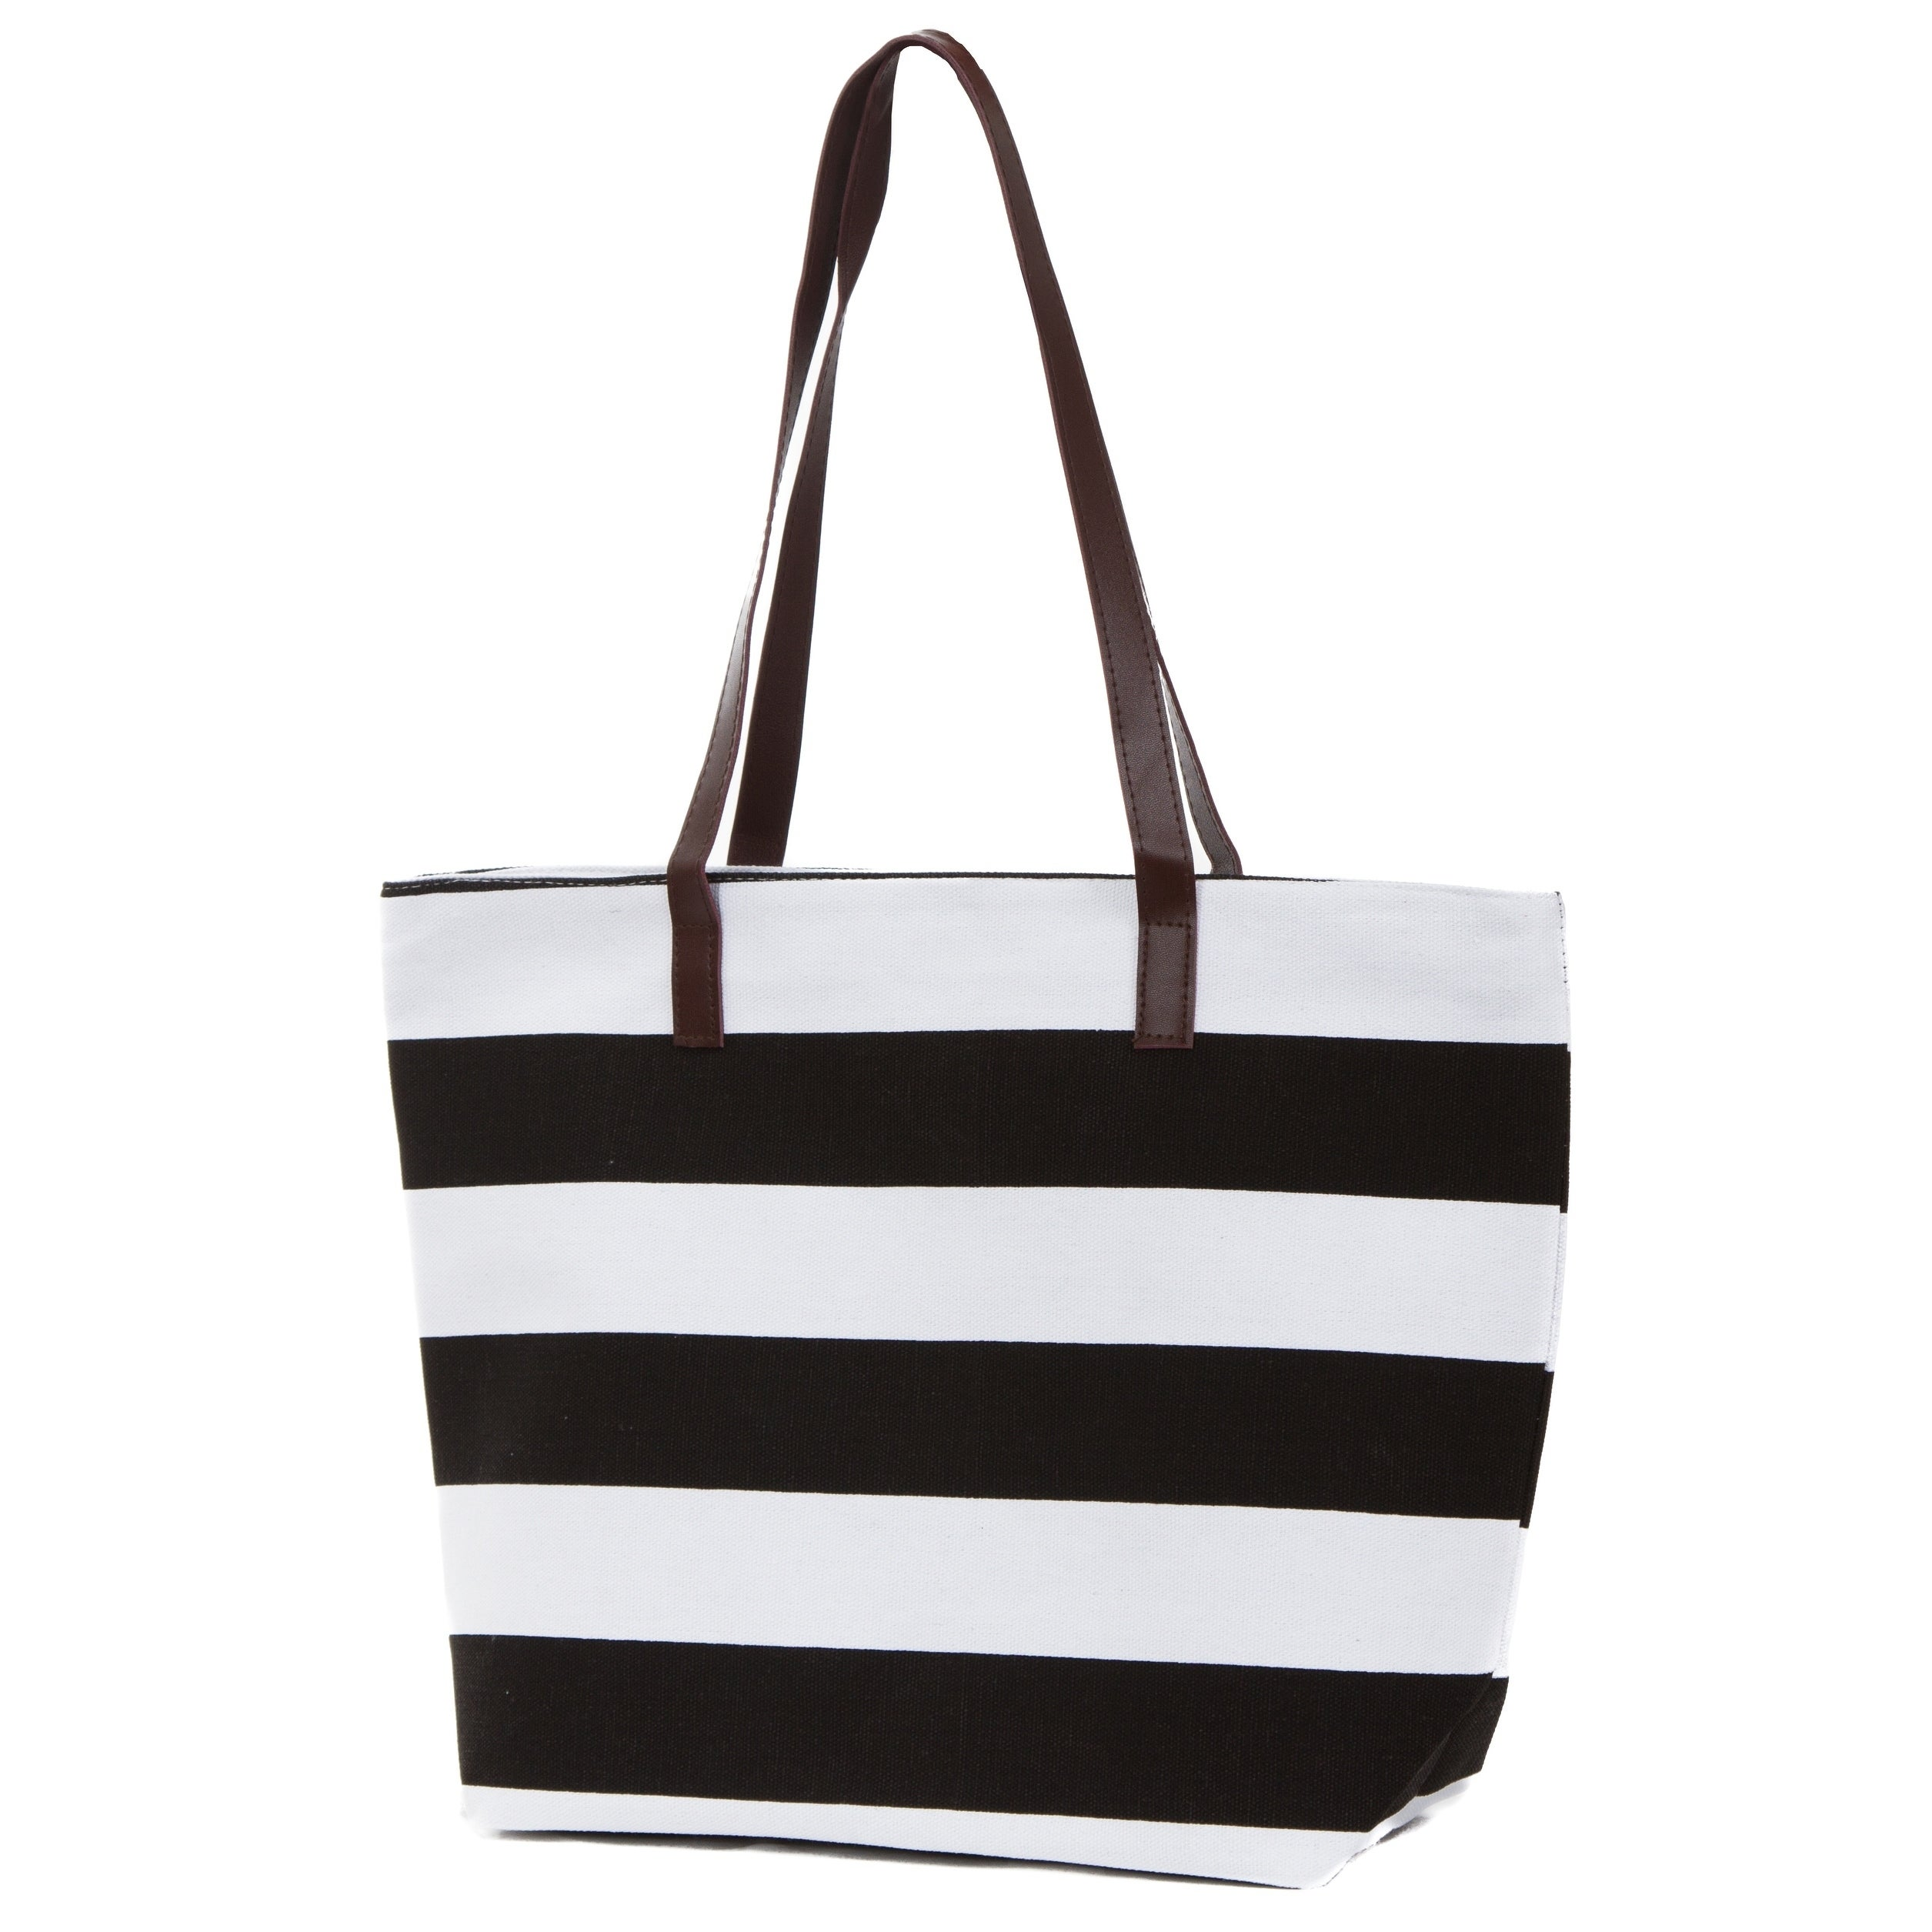 4b94c1795db Canvas Tote Bag, Striped Tote with Faux Leather Trim